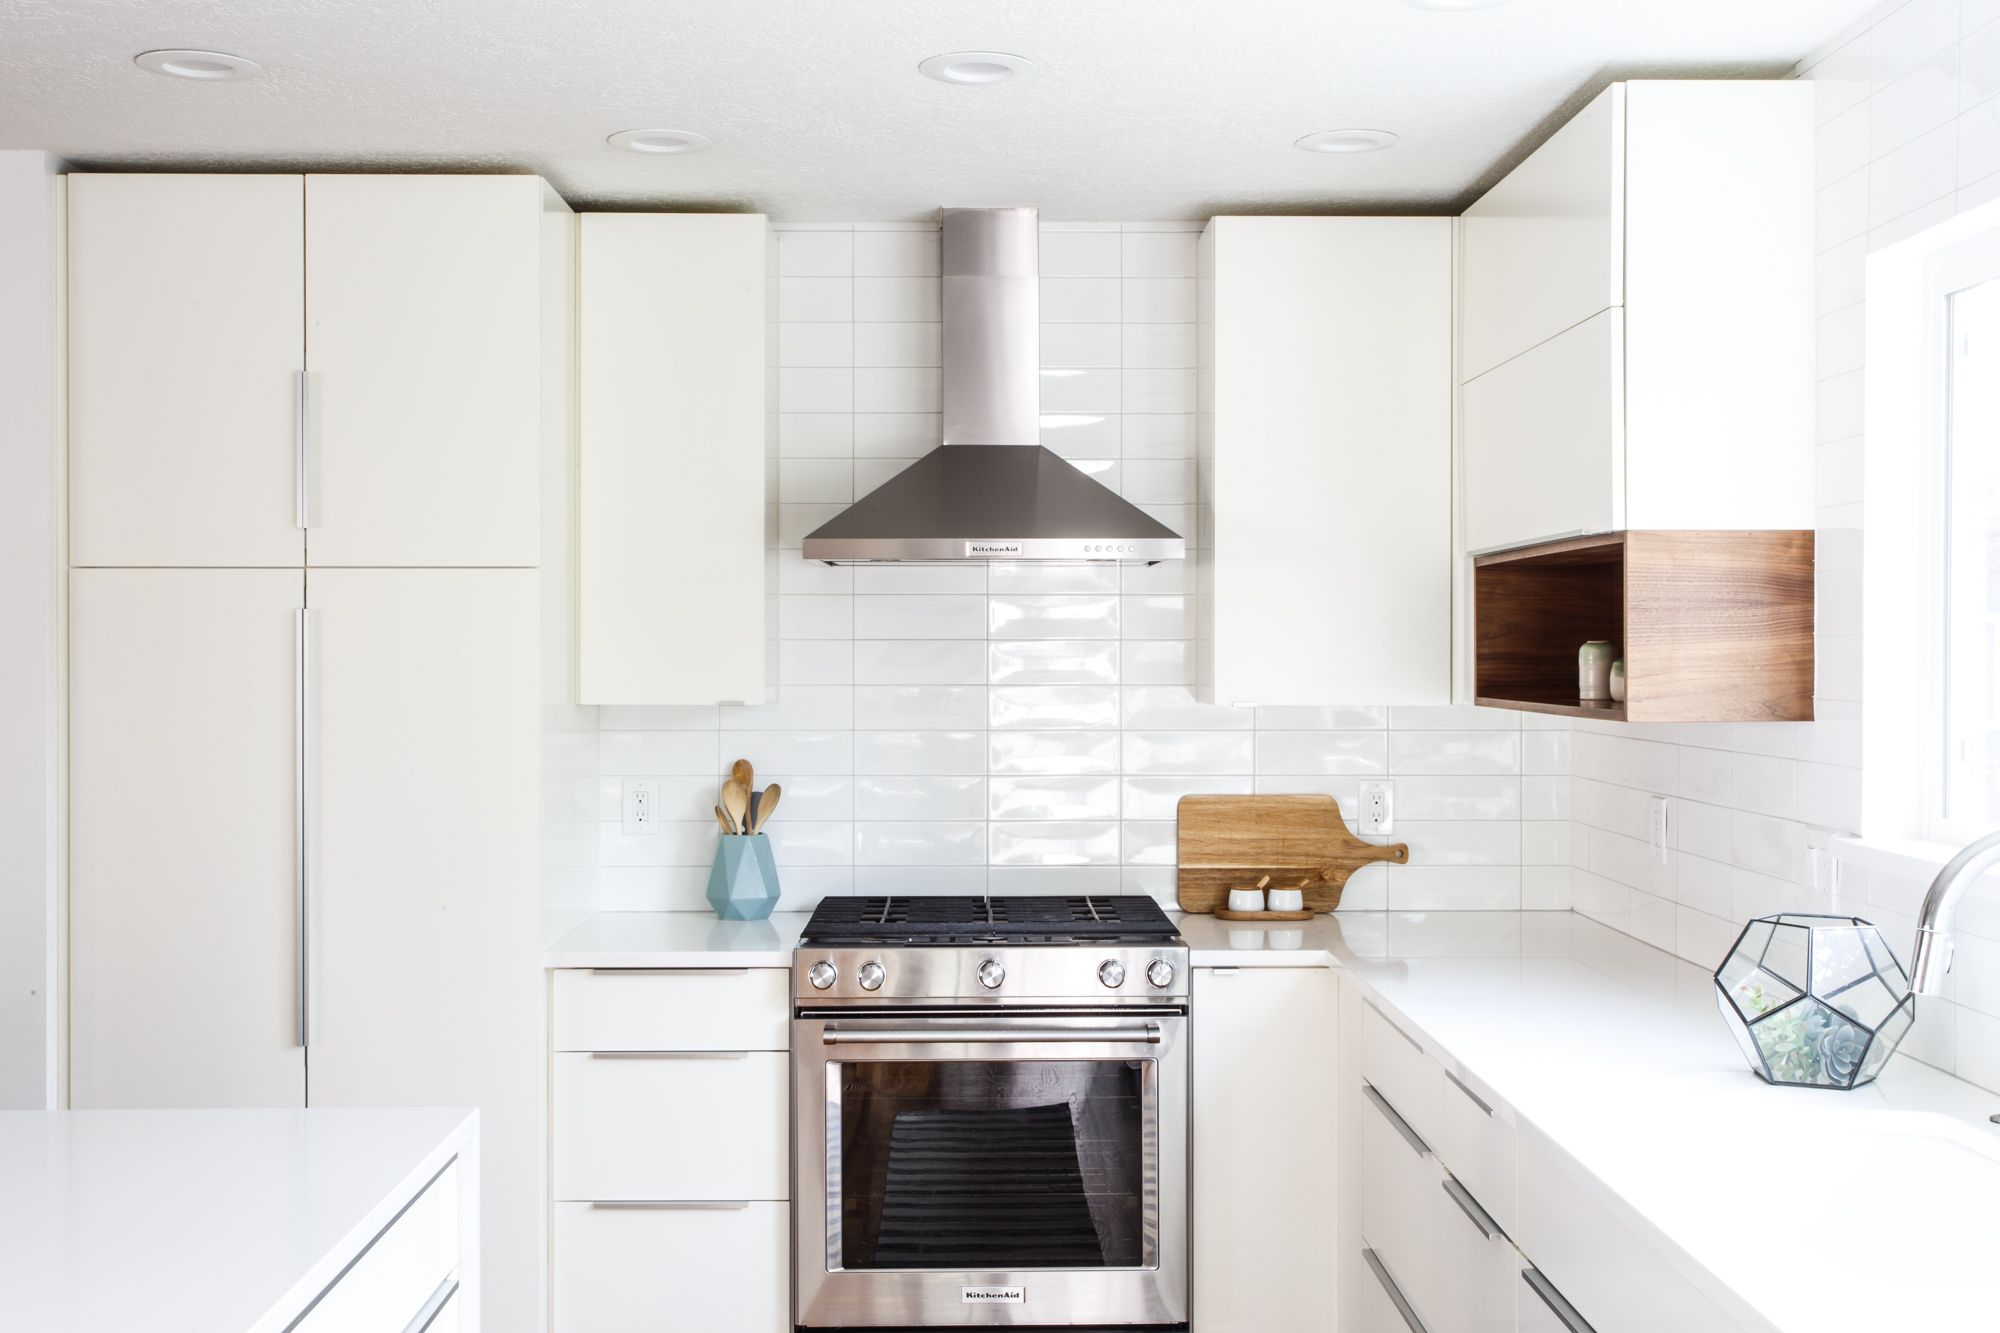 From A Kitchen Remodel In Beaverton Oregon Remodel Remodelingkitchenideas Remodelingideas Remodelingkitchen Kit Kitchen Remodel Remodel Kitchen Design